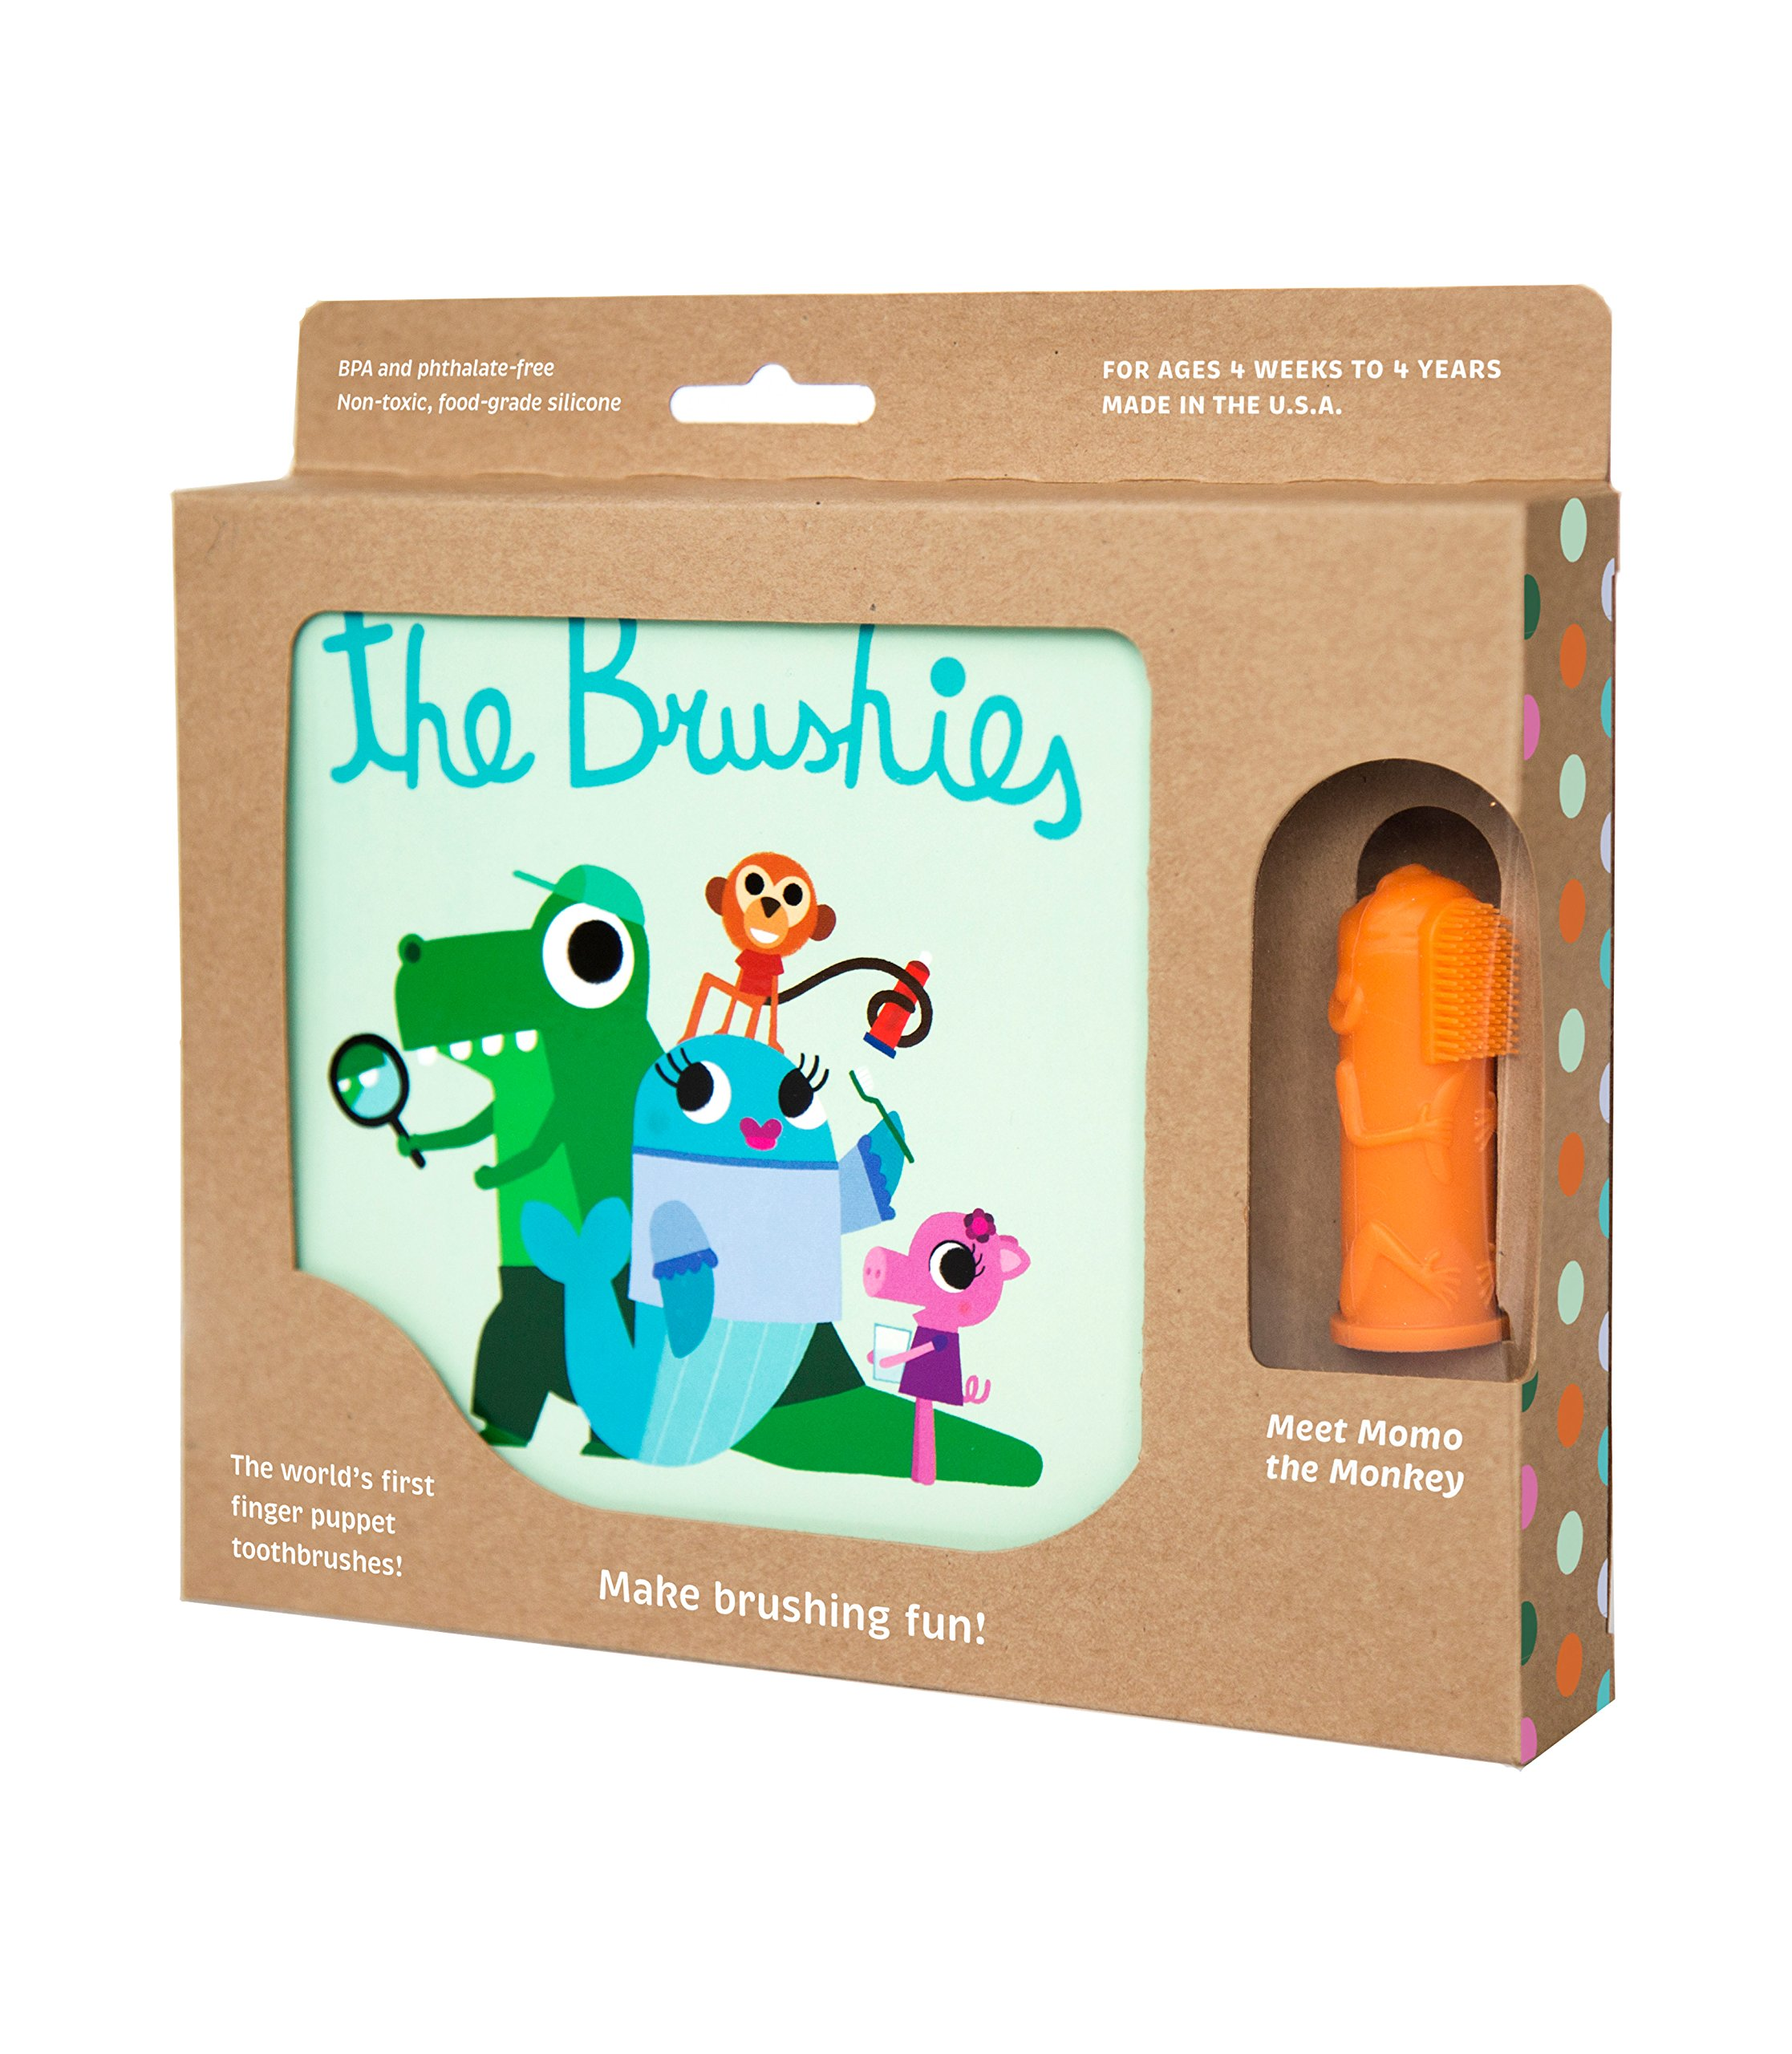 The Brushies - baby and toddler toothbrush and storybook - Momo the Monkey!